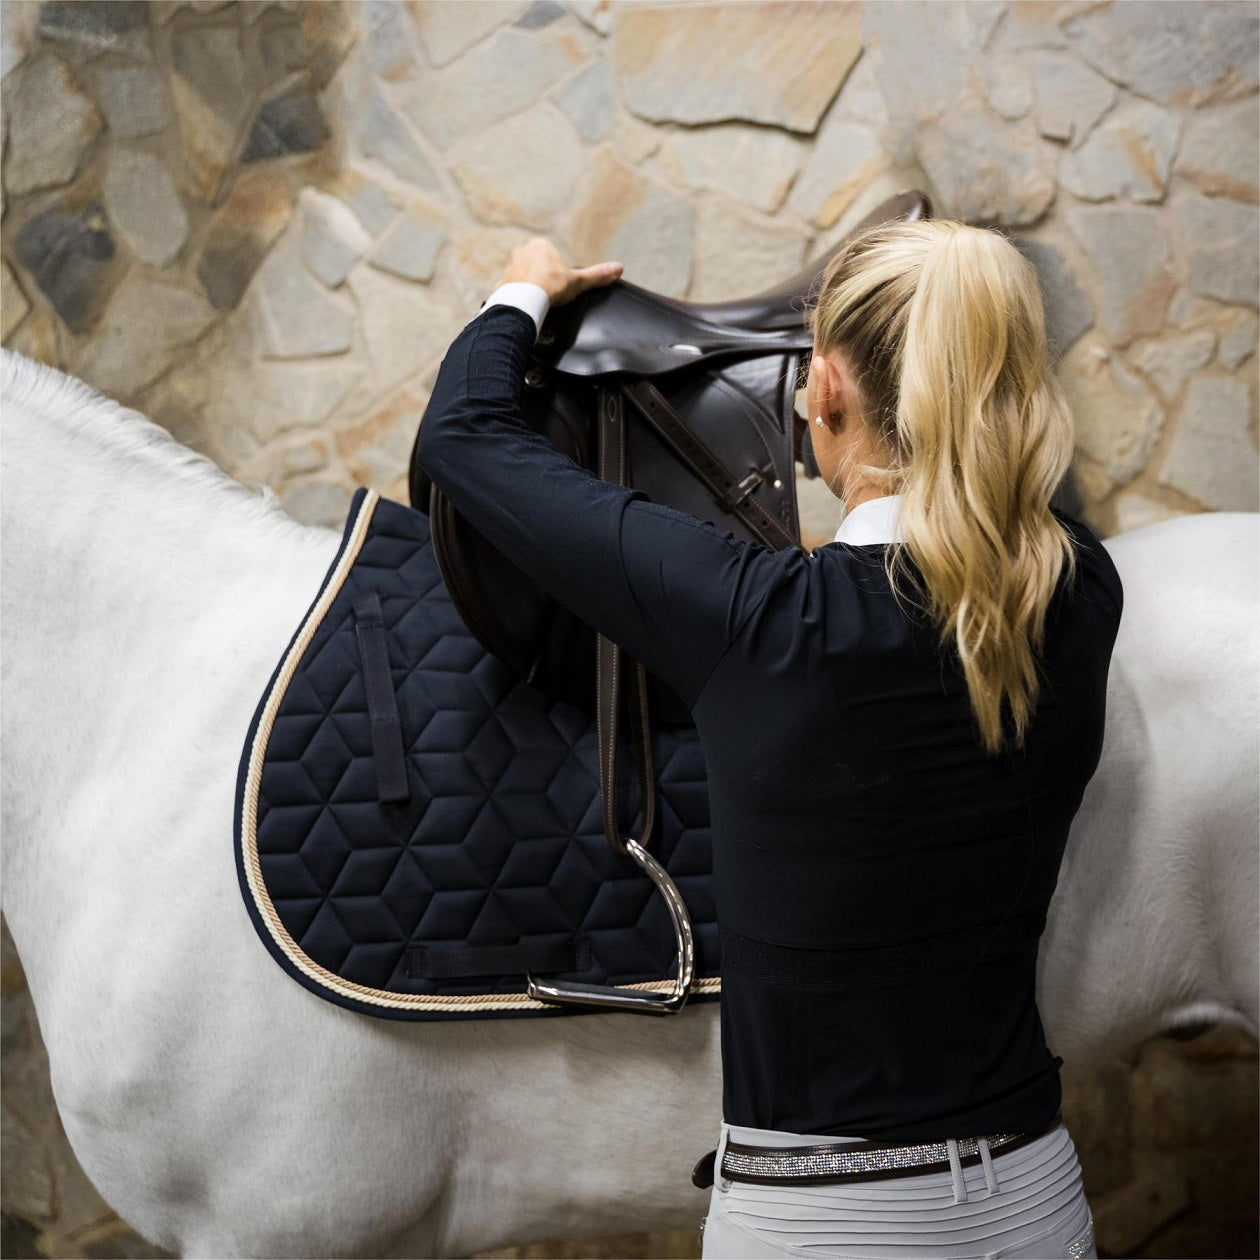 Ophena saddle pad - now available!